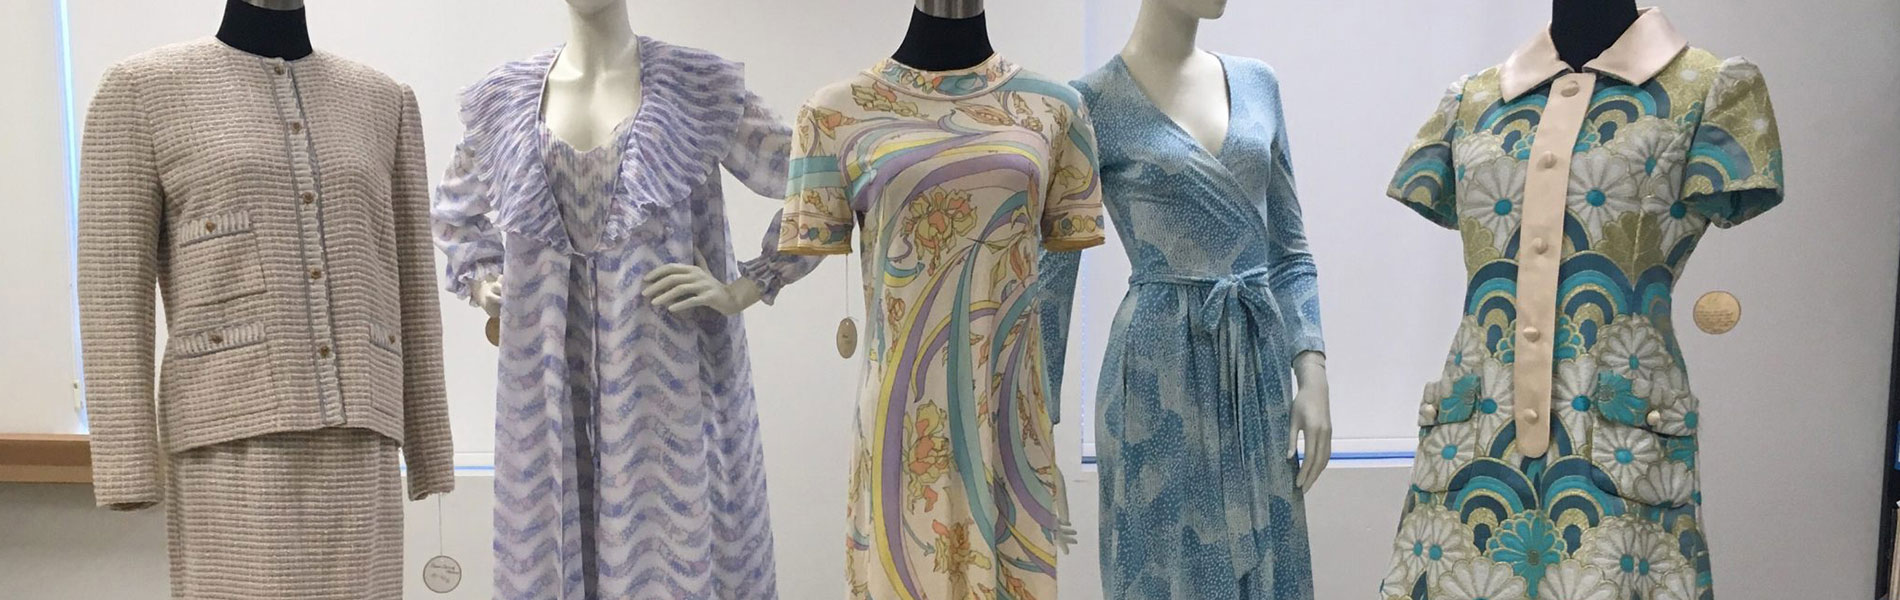 Five patterned pastel garments, including designs by Emilio Pucci and Coco Chanel